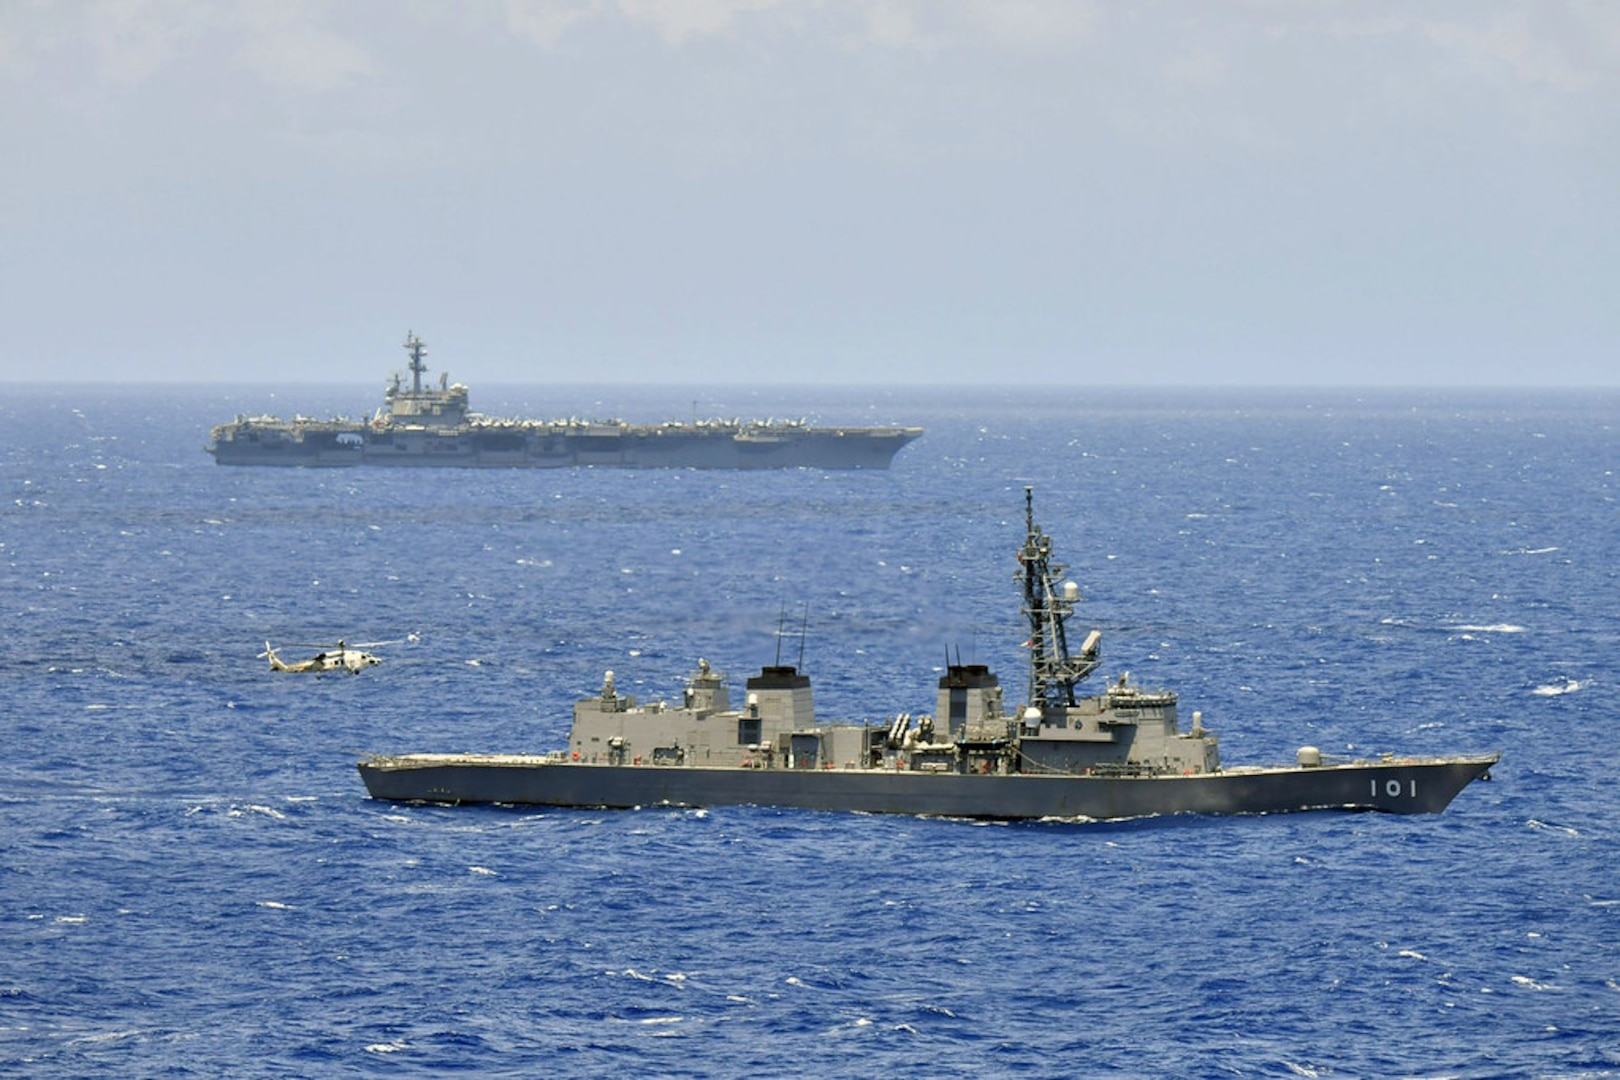 USS Ronald Reagan, JS Izumo Sail Together in the South China Sea